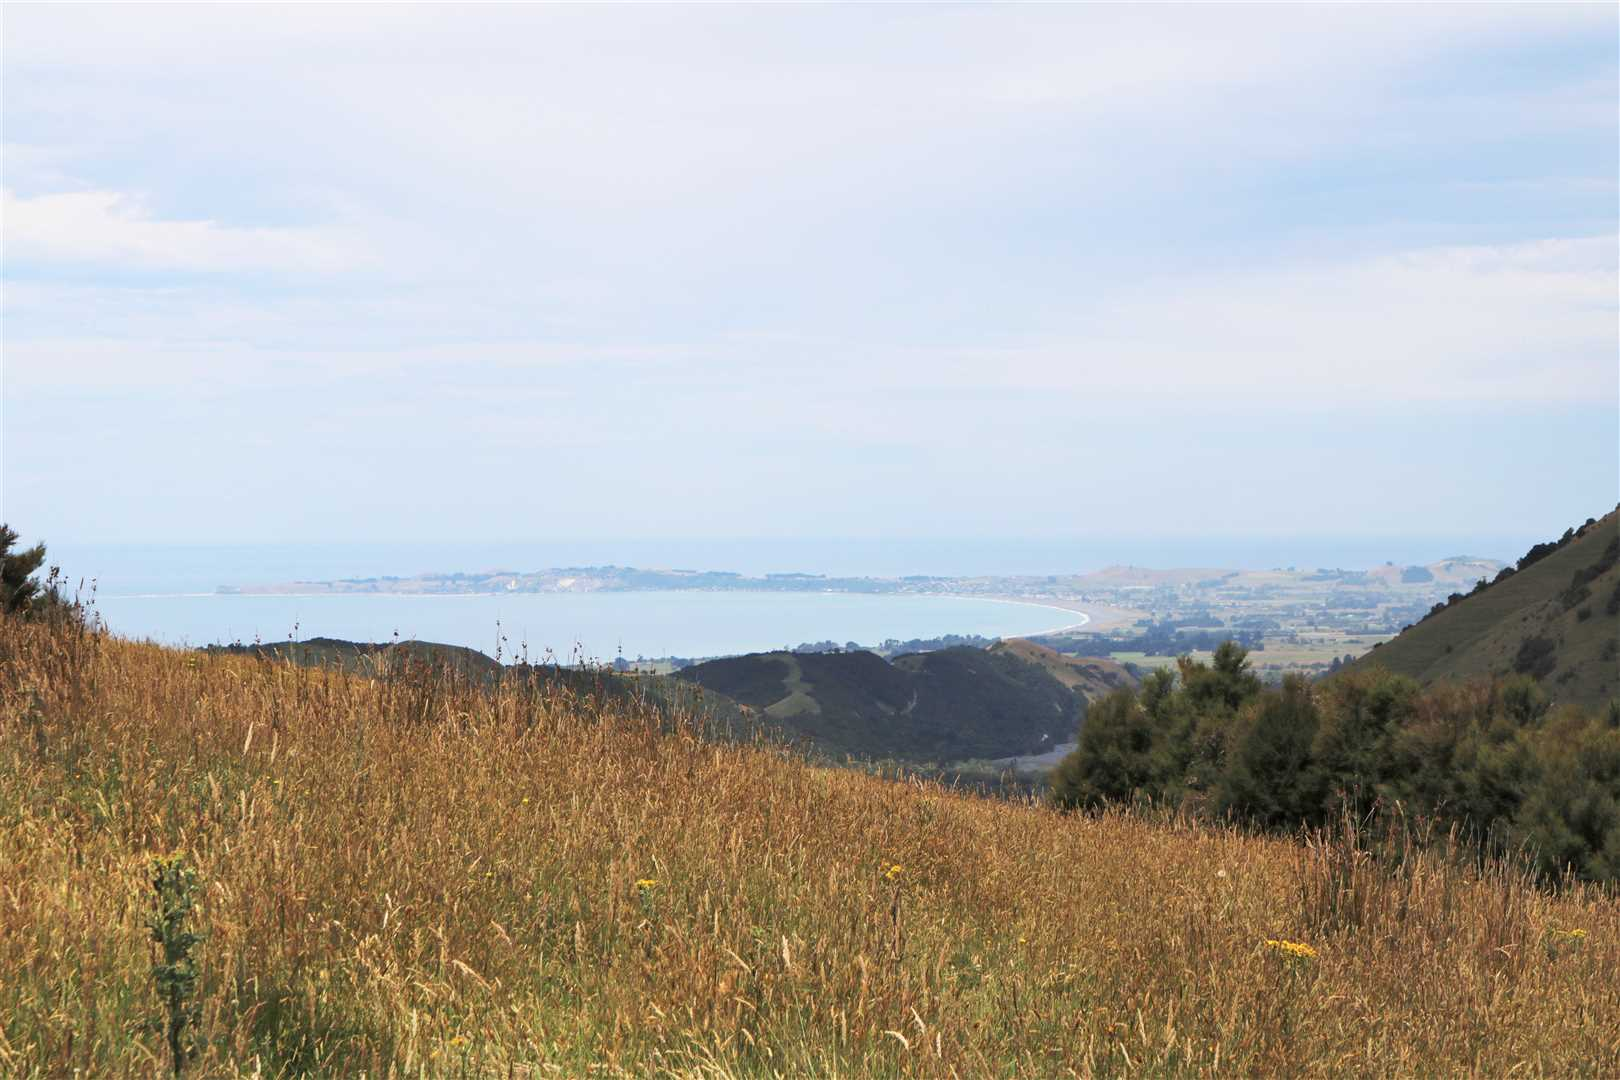 Towards Kaikoura from the Prime Building site.